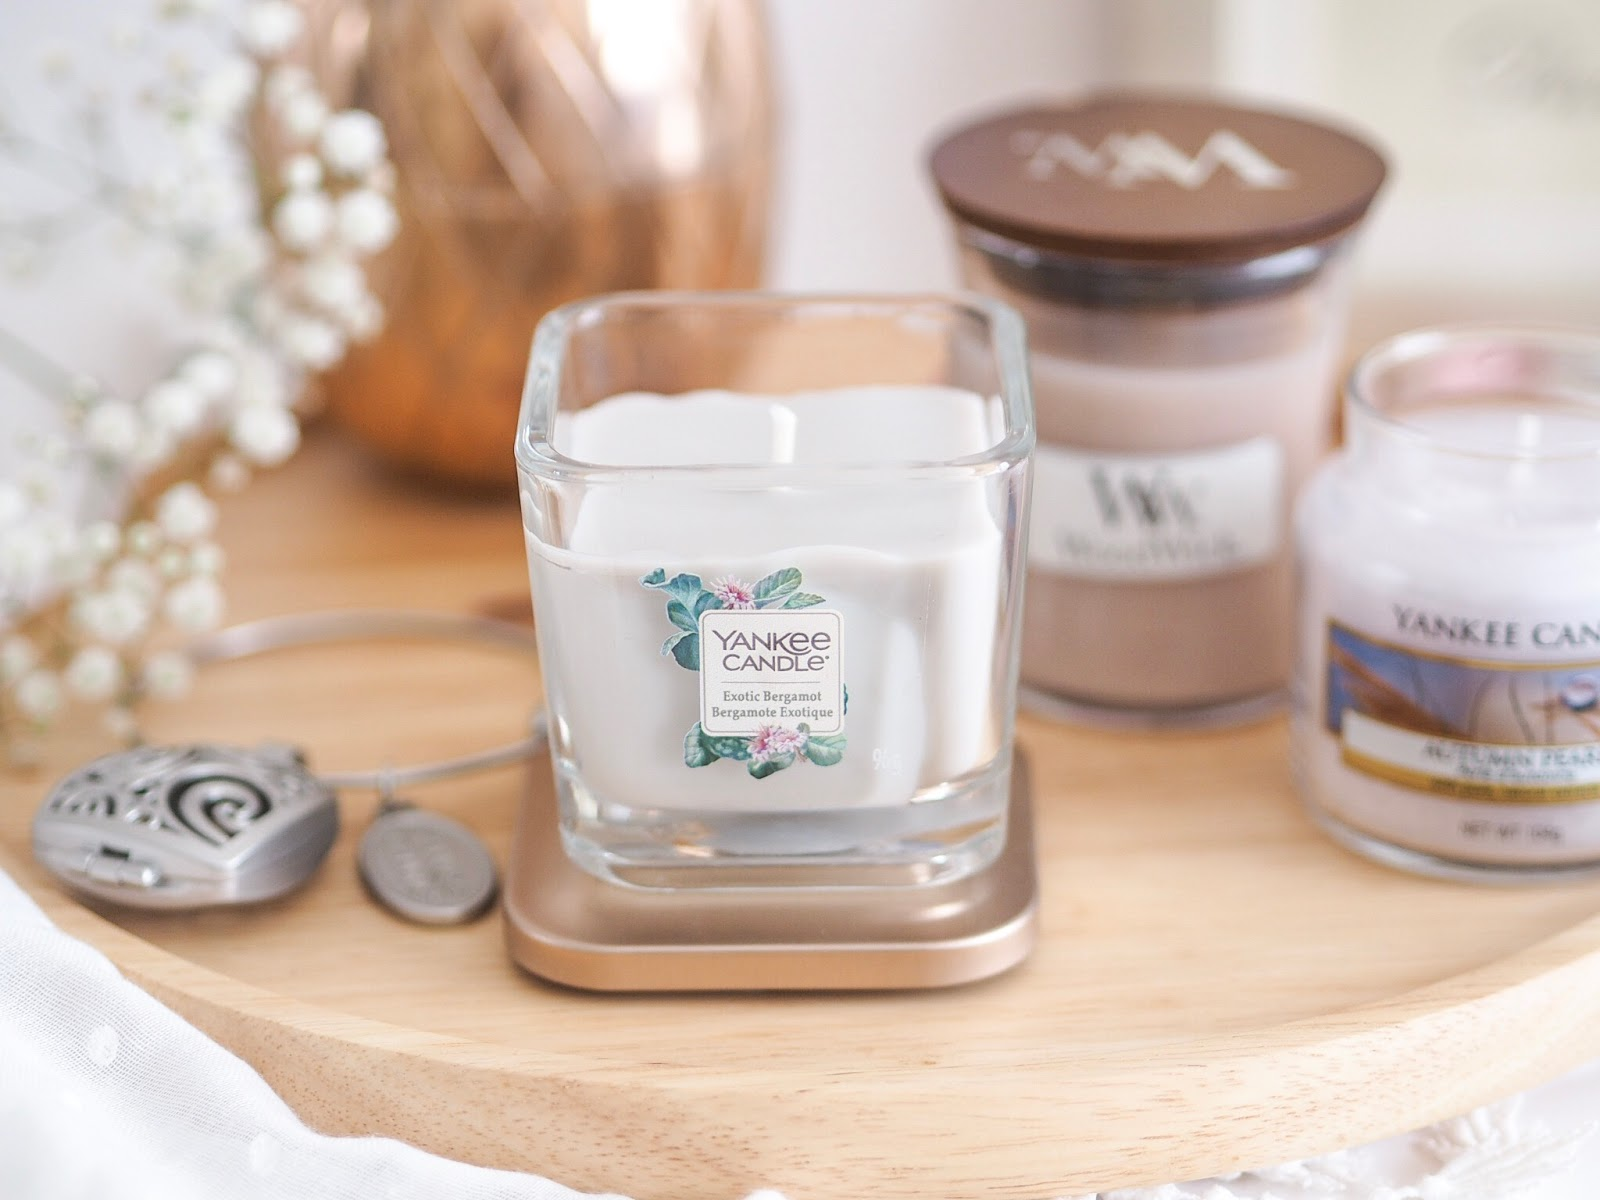 Yankee Candle Elevation Collection & Charming Scents Launch, UK Blogger, Beauty Blogger, Candle Blogger, Fragrance Blogger, Fragrance Review